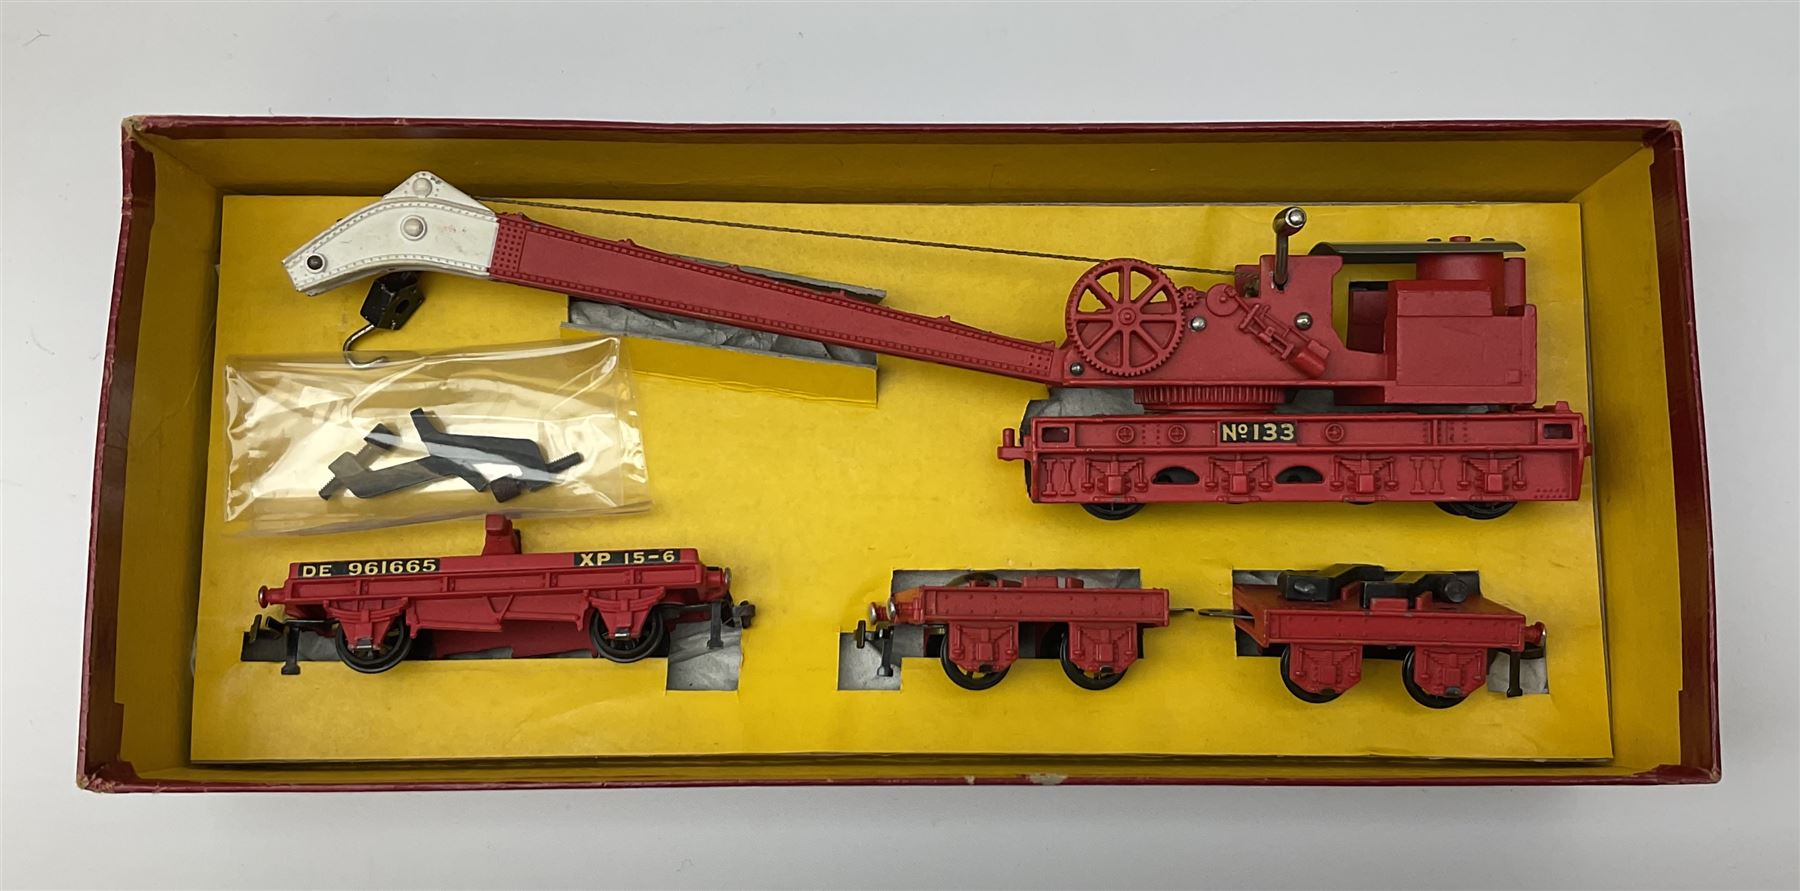 Hornby Dublo - Breakdown Crane No.4062 with screw jacks in plain red box with end label; D1 Girder B - Image 7 of 11